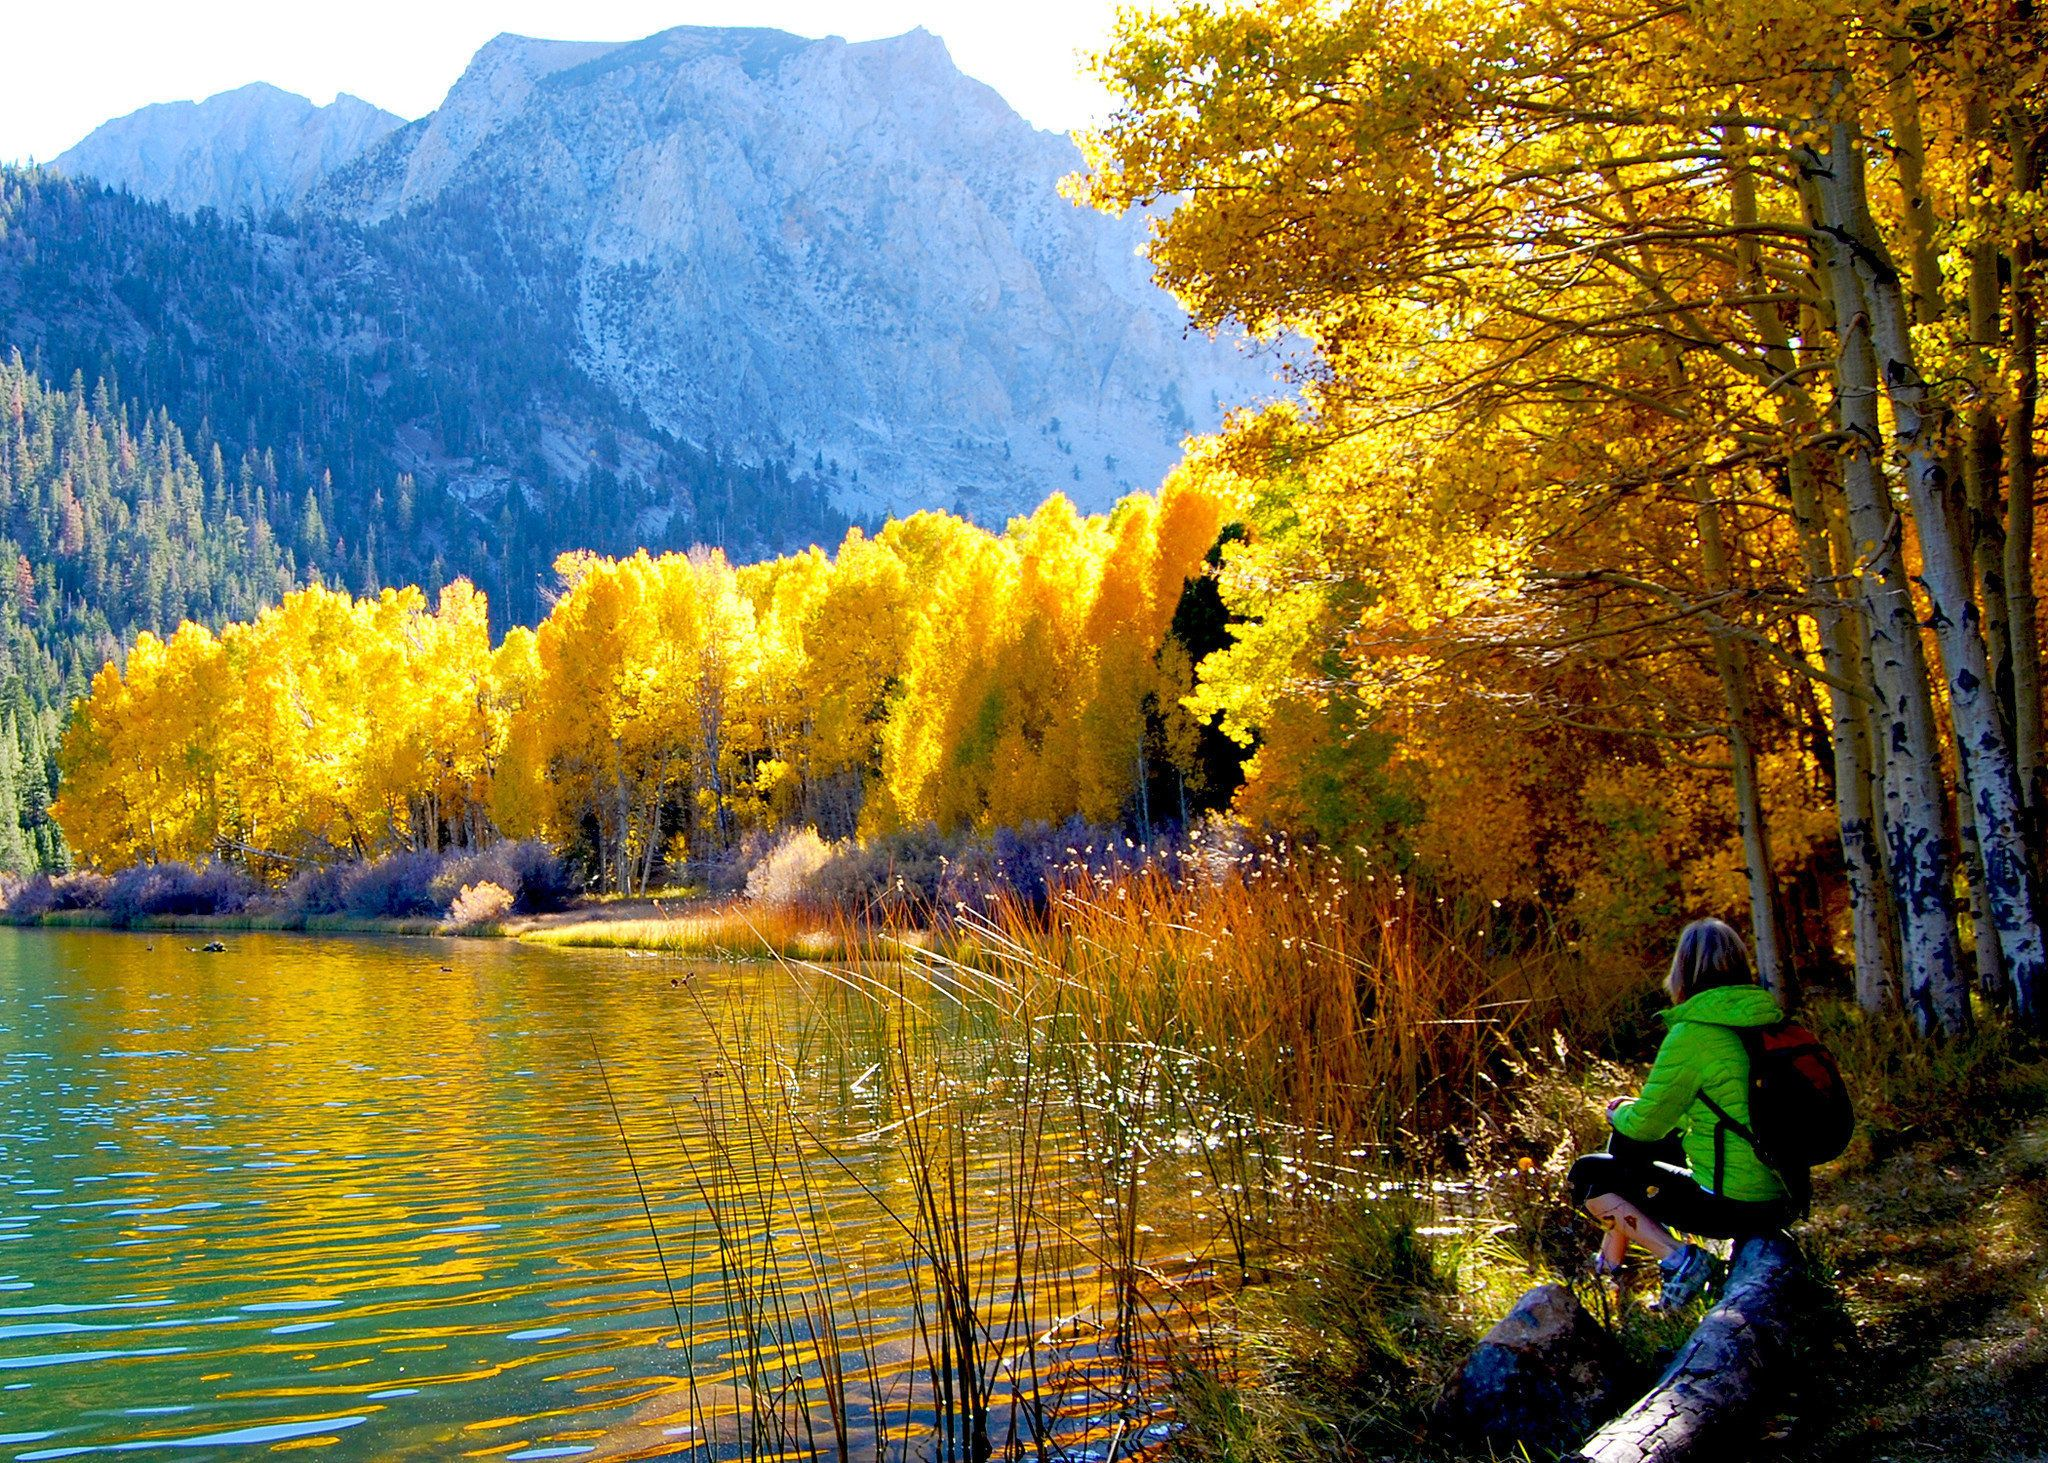 California Plumas County claims fall color crown this